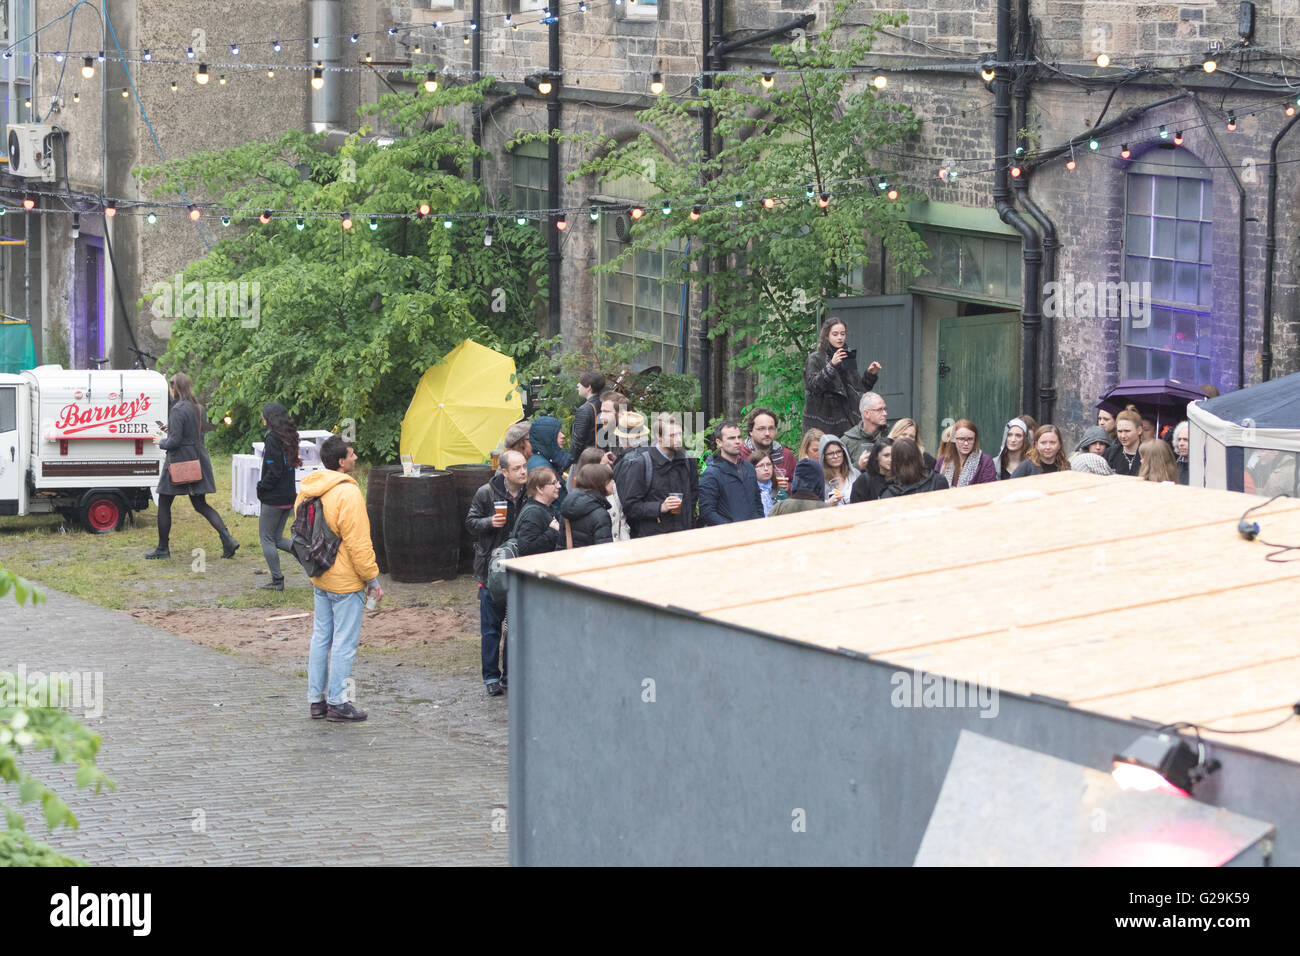 Edinburgh, Scotland. 26th May, 2016. Preview Night organisers talking/giving a tour at Hidden Door 26th May 2016 - Stock Image